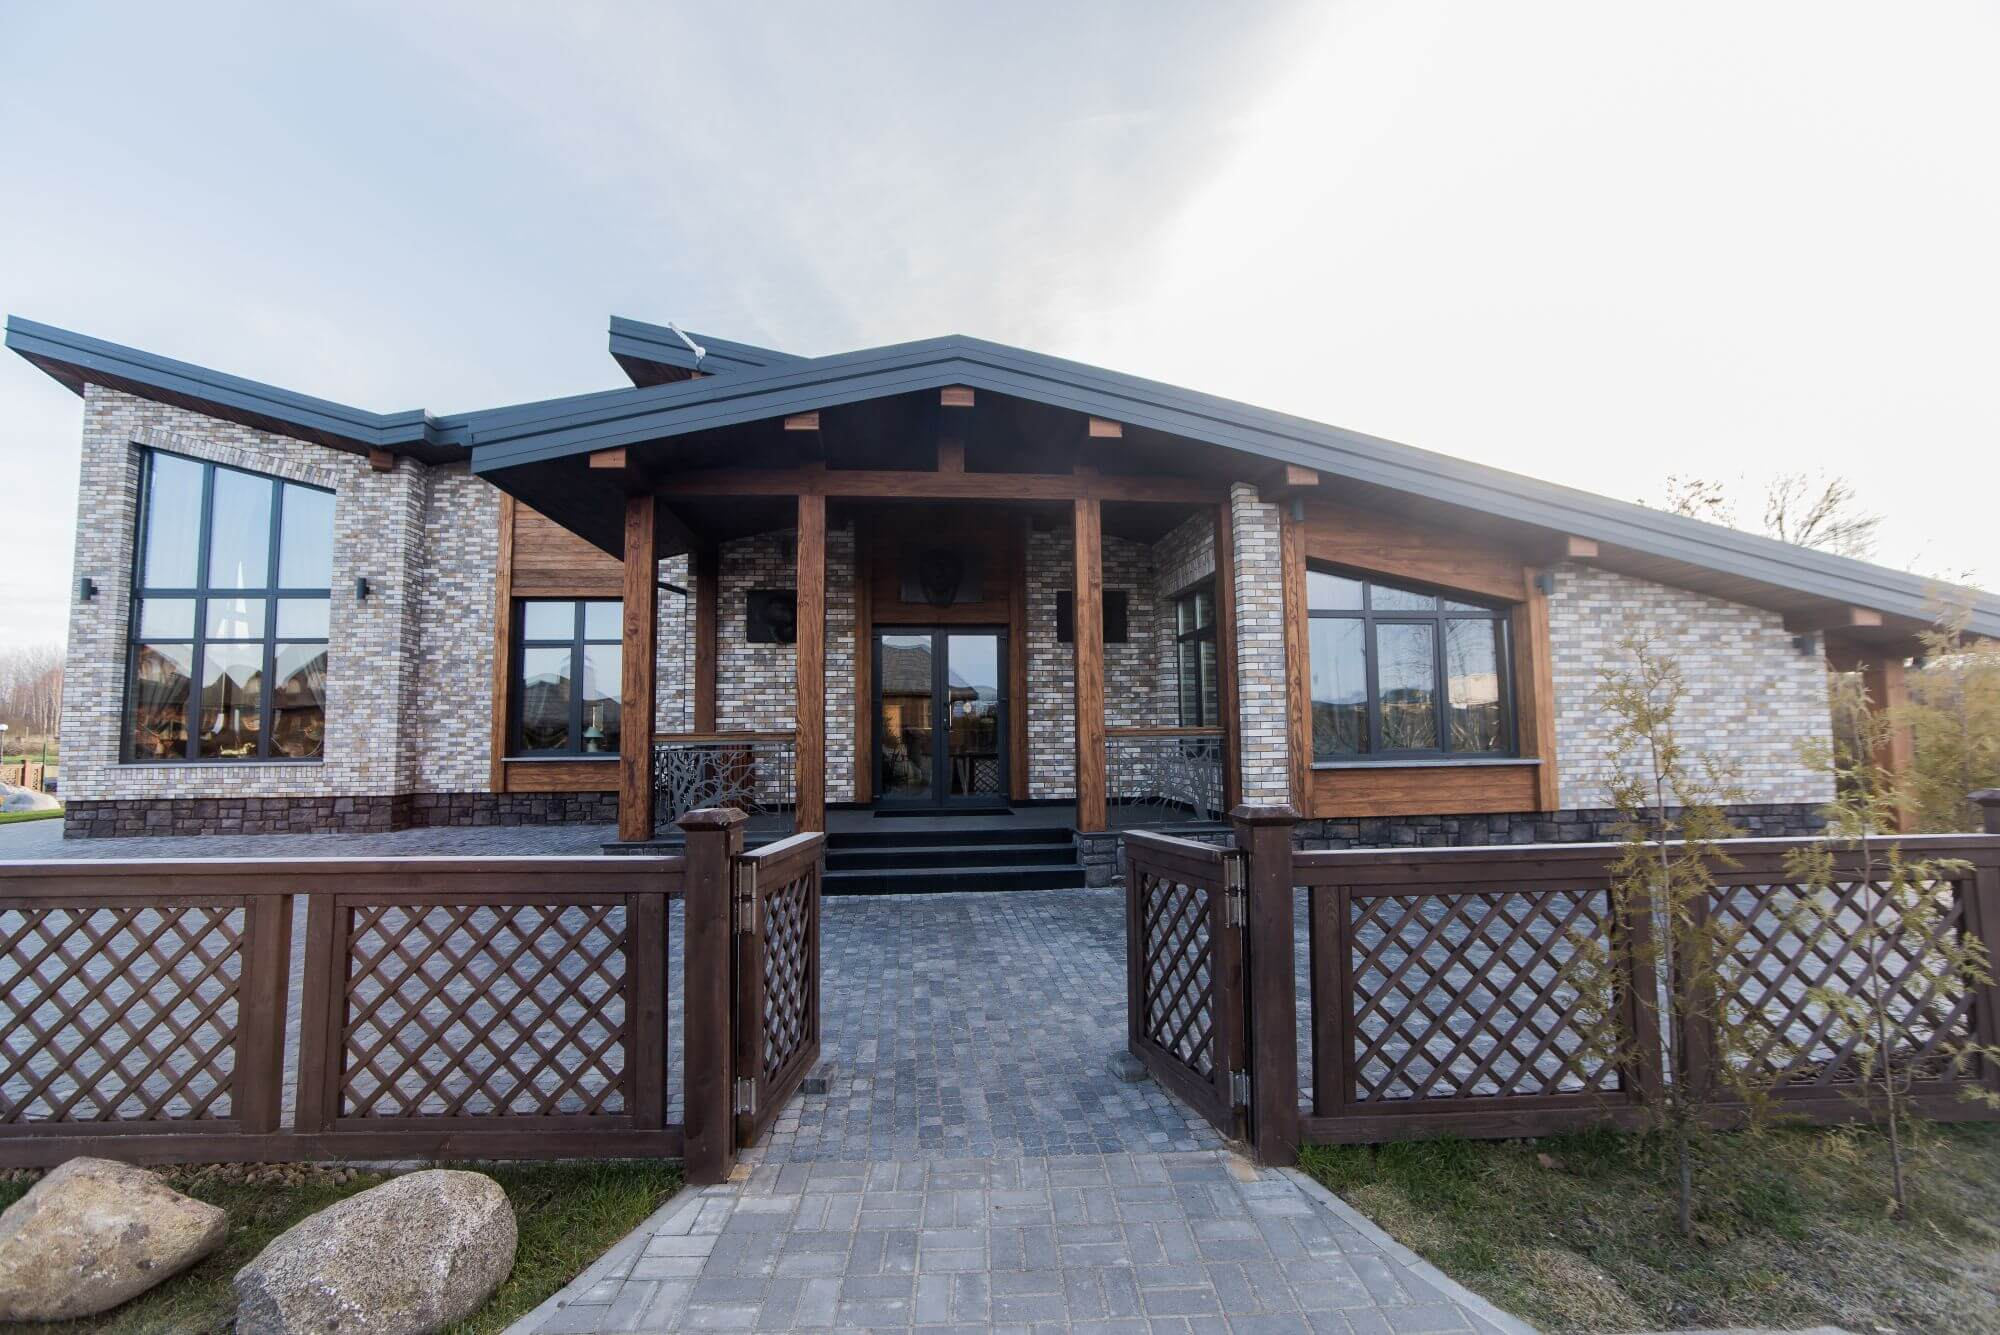 Beautiful home features exterior wooden features finished with Rubio Monocoat.